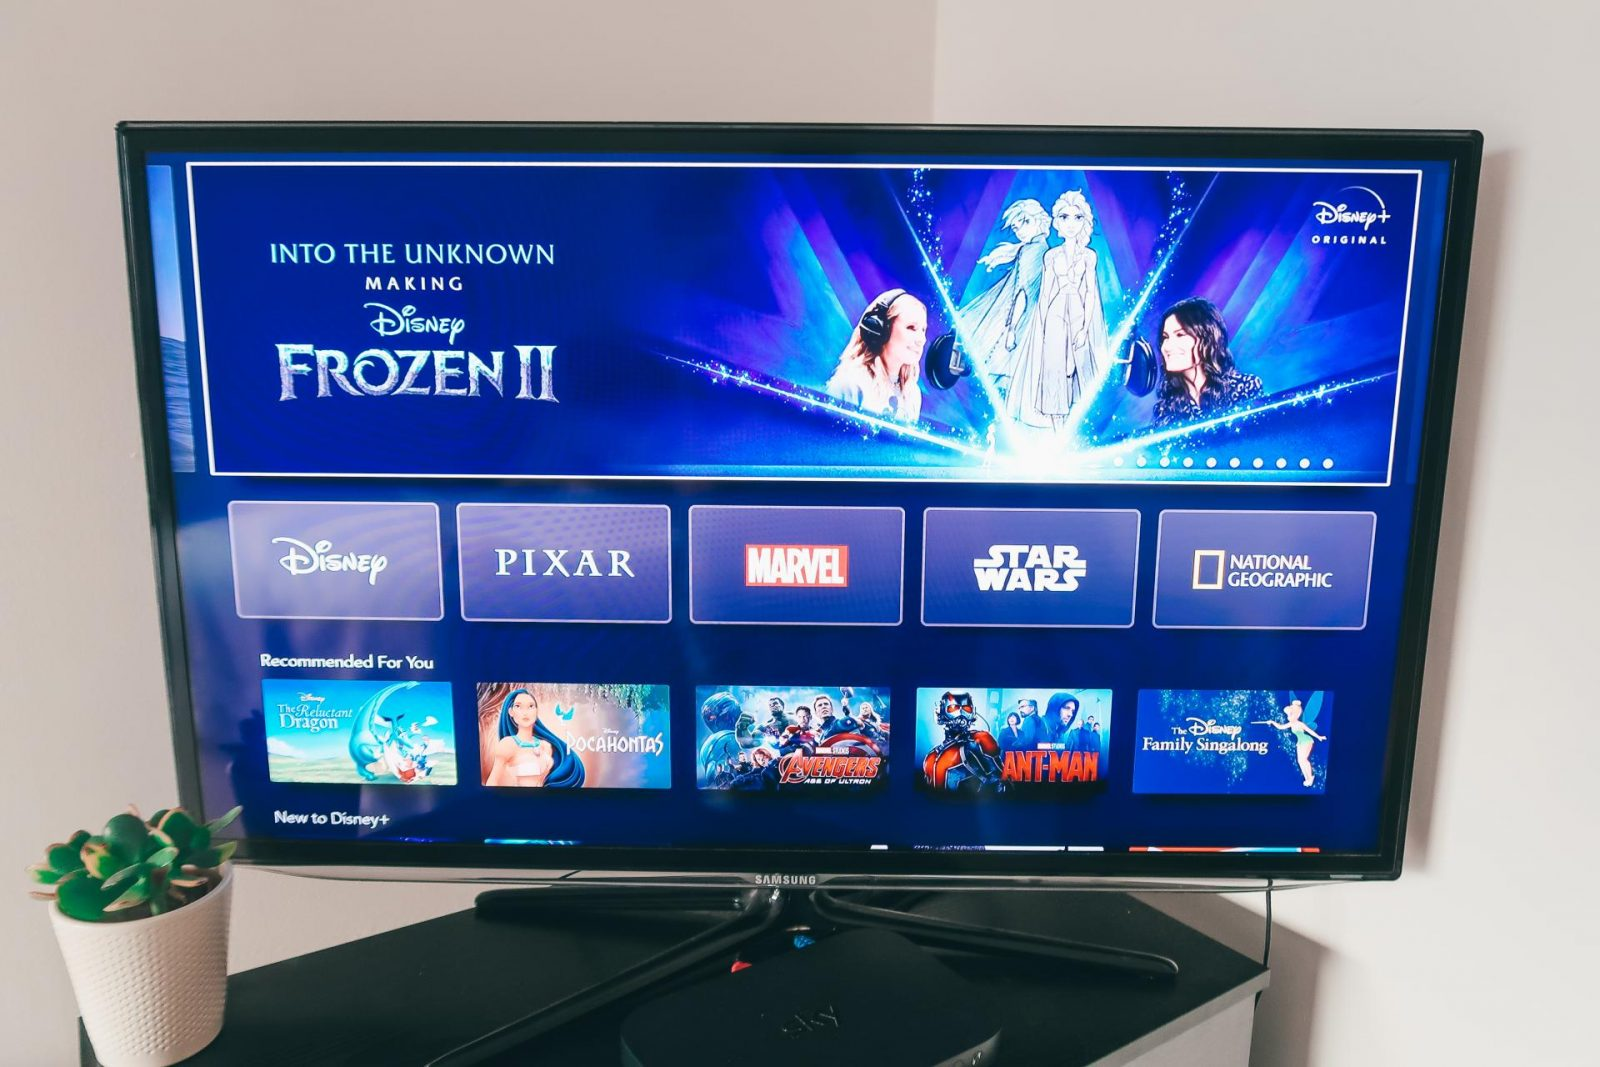 What to watch on Disney plus: Into the Unknown: The Making of Frozen 2.